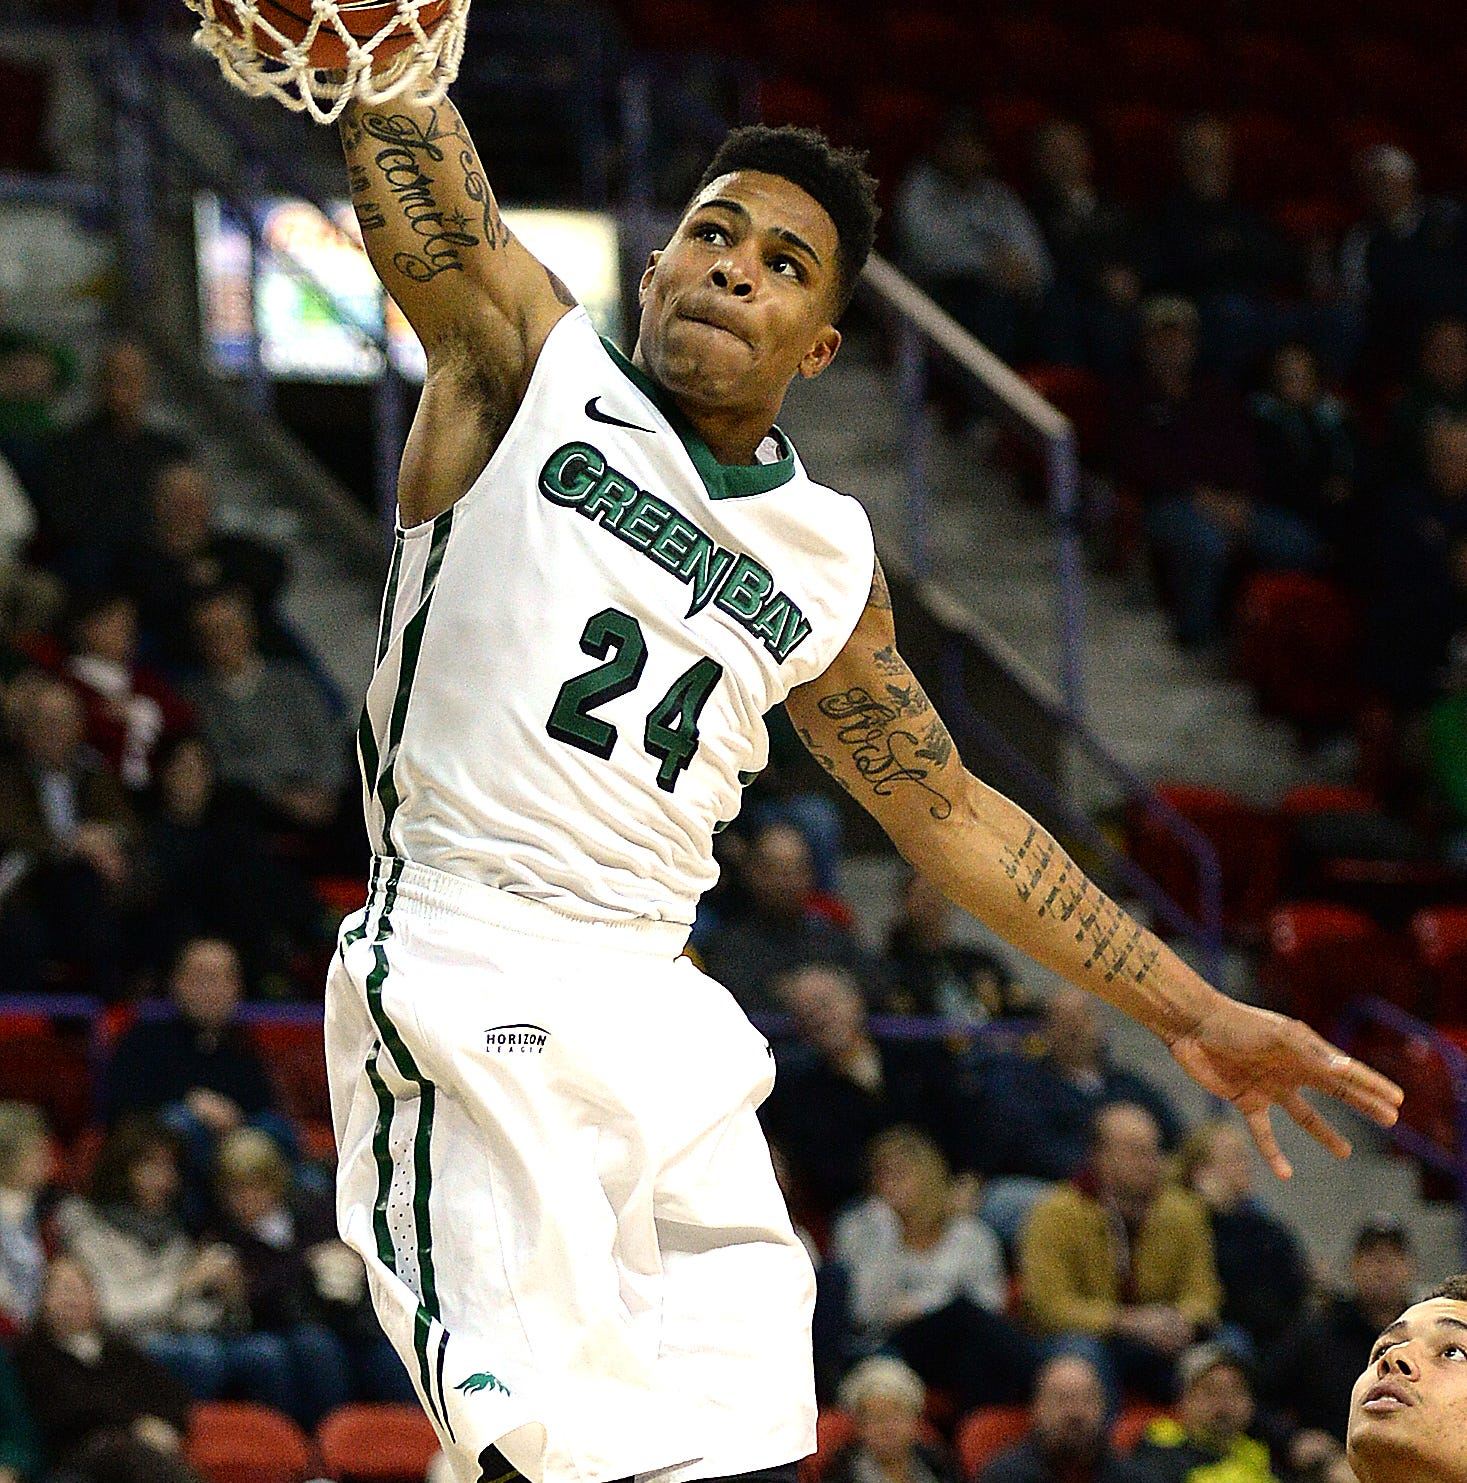 'Chi-Town' documentary on former UWGB basketball star Keifer Sykes is out on iTunes